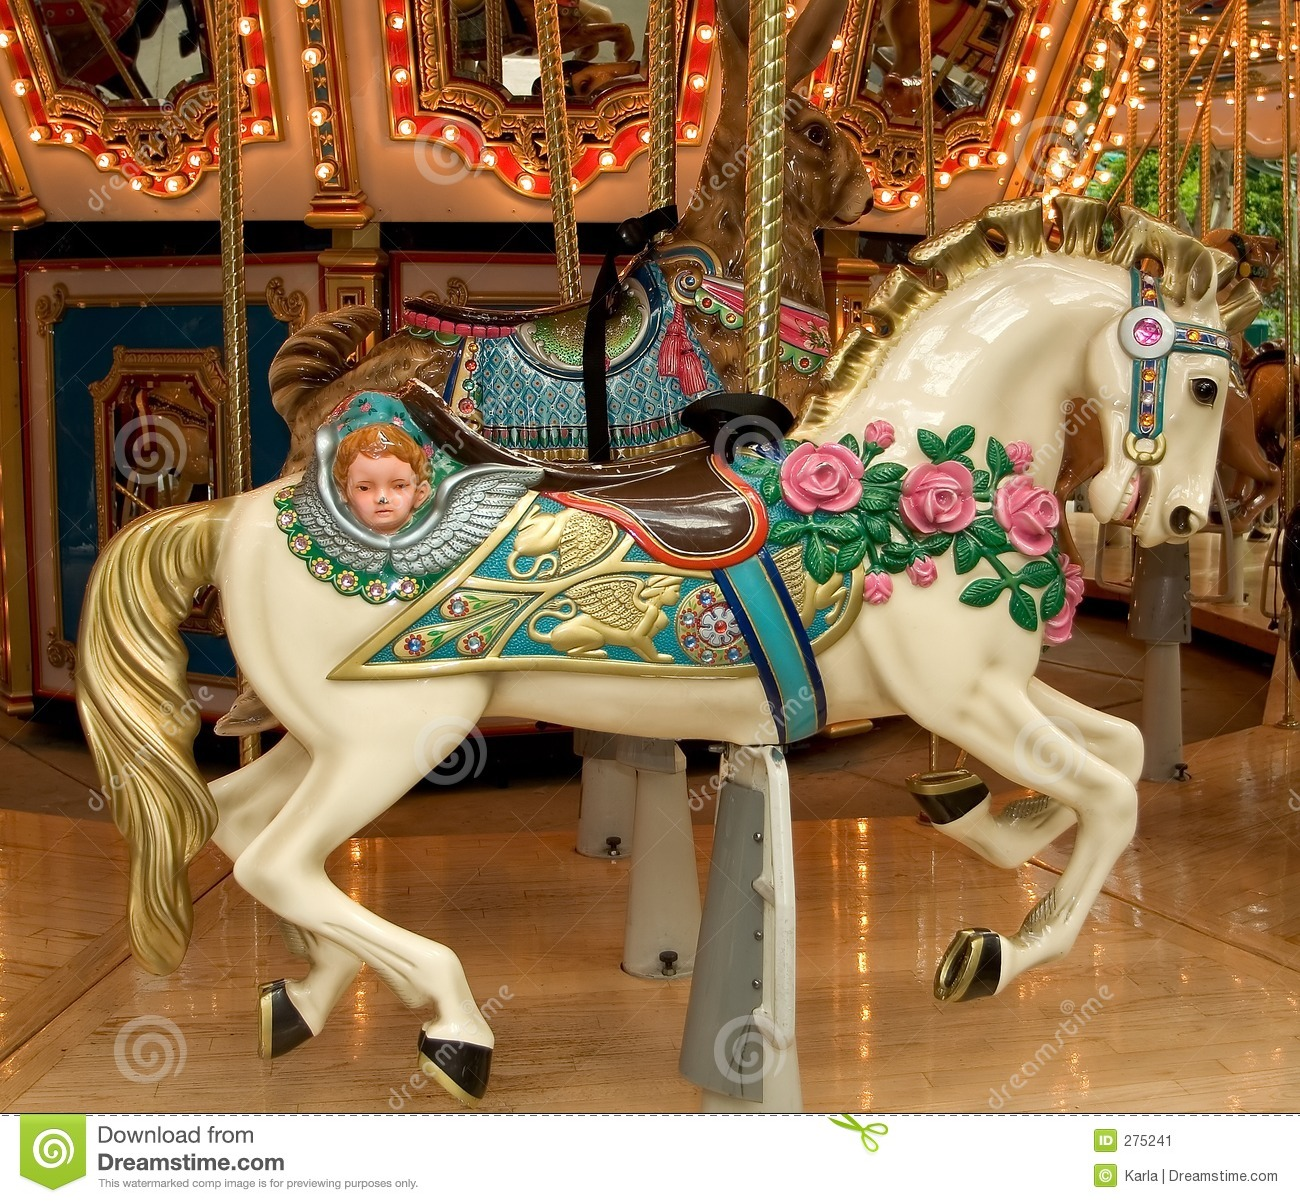 Ride The Pony >> Carousel Horse stock image. Image of representation, hoofs ...